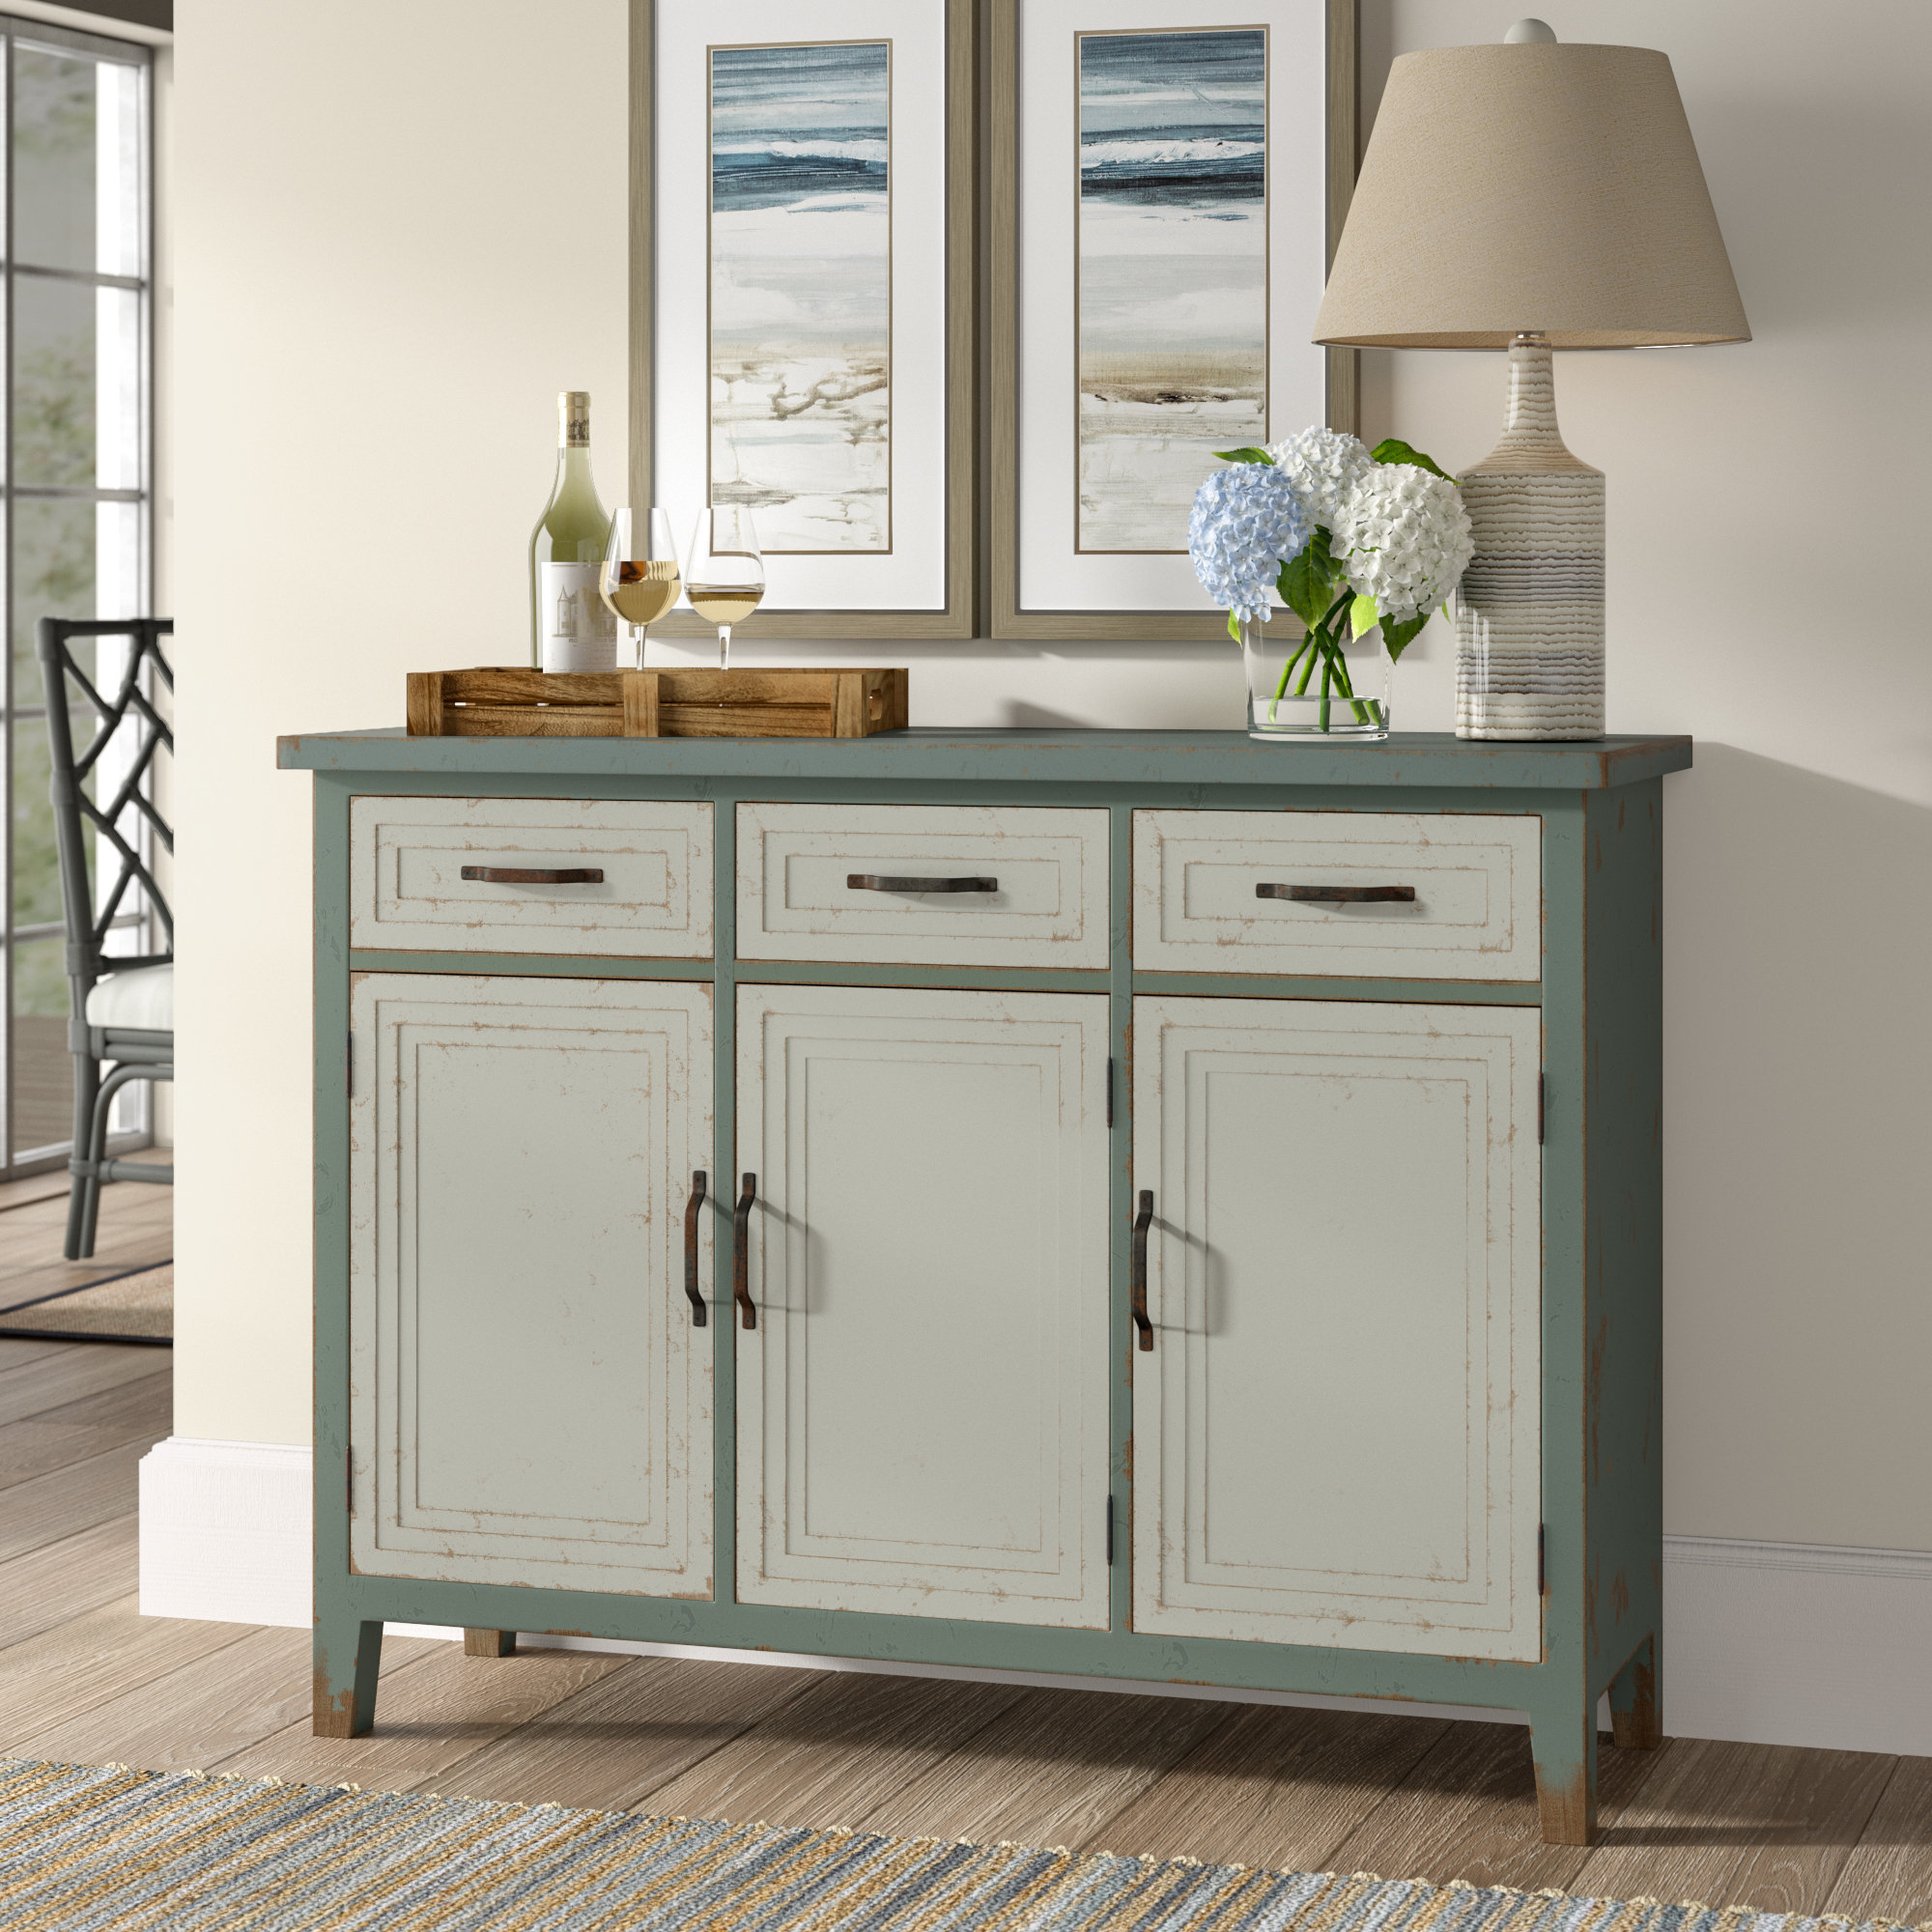 3 Drawer Sideboard | Wayfair Intended For Baleine 3 Drawer Sideboards (View 5 of 20)